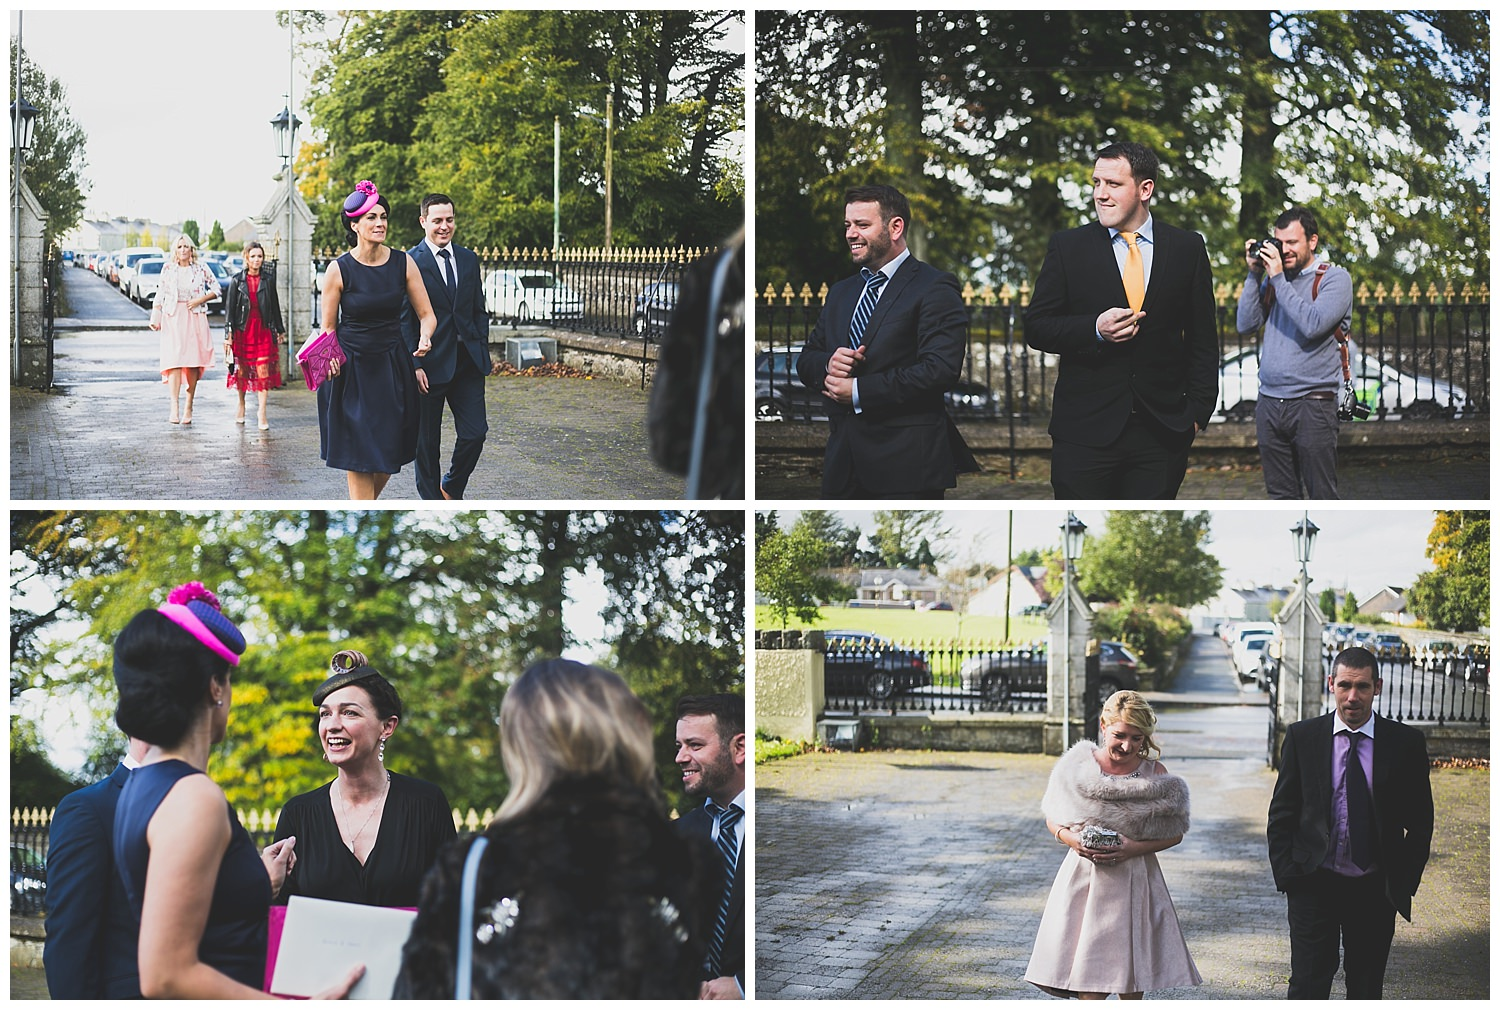 shots of guests arriving to the wedding